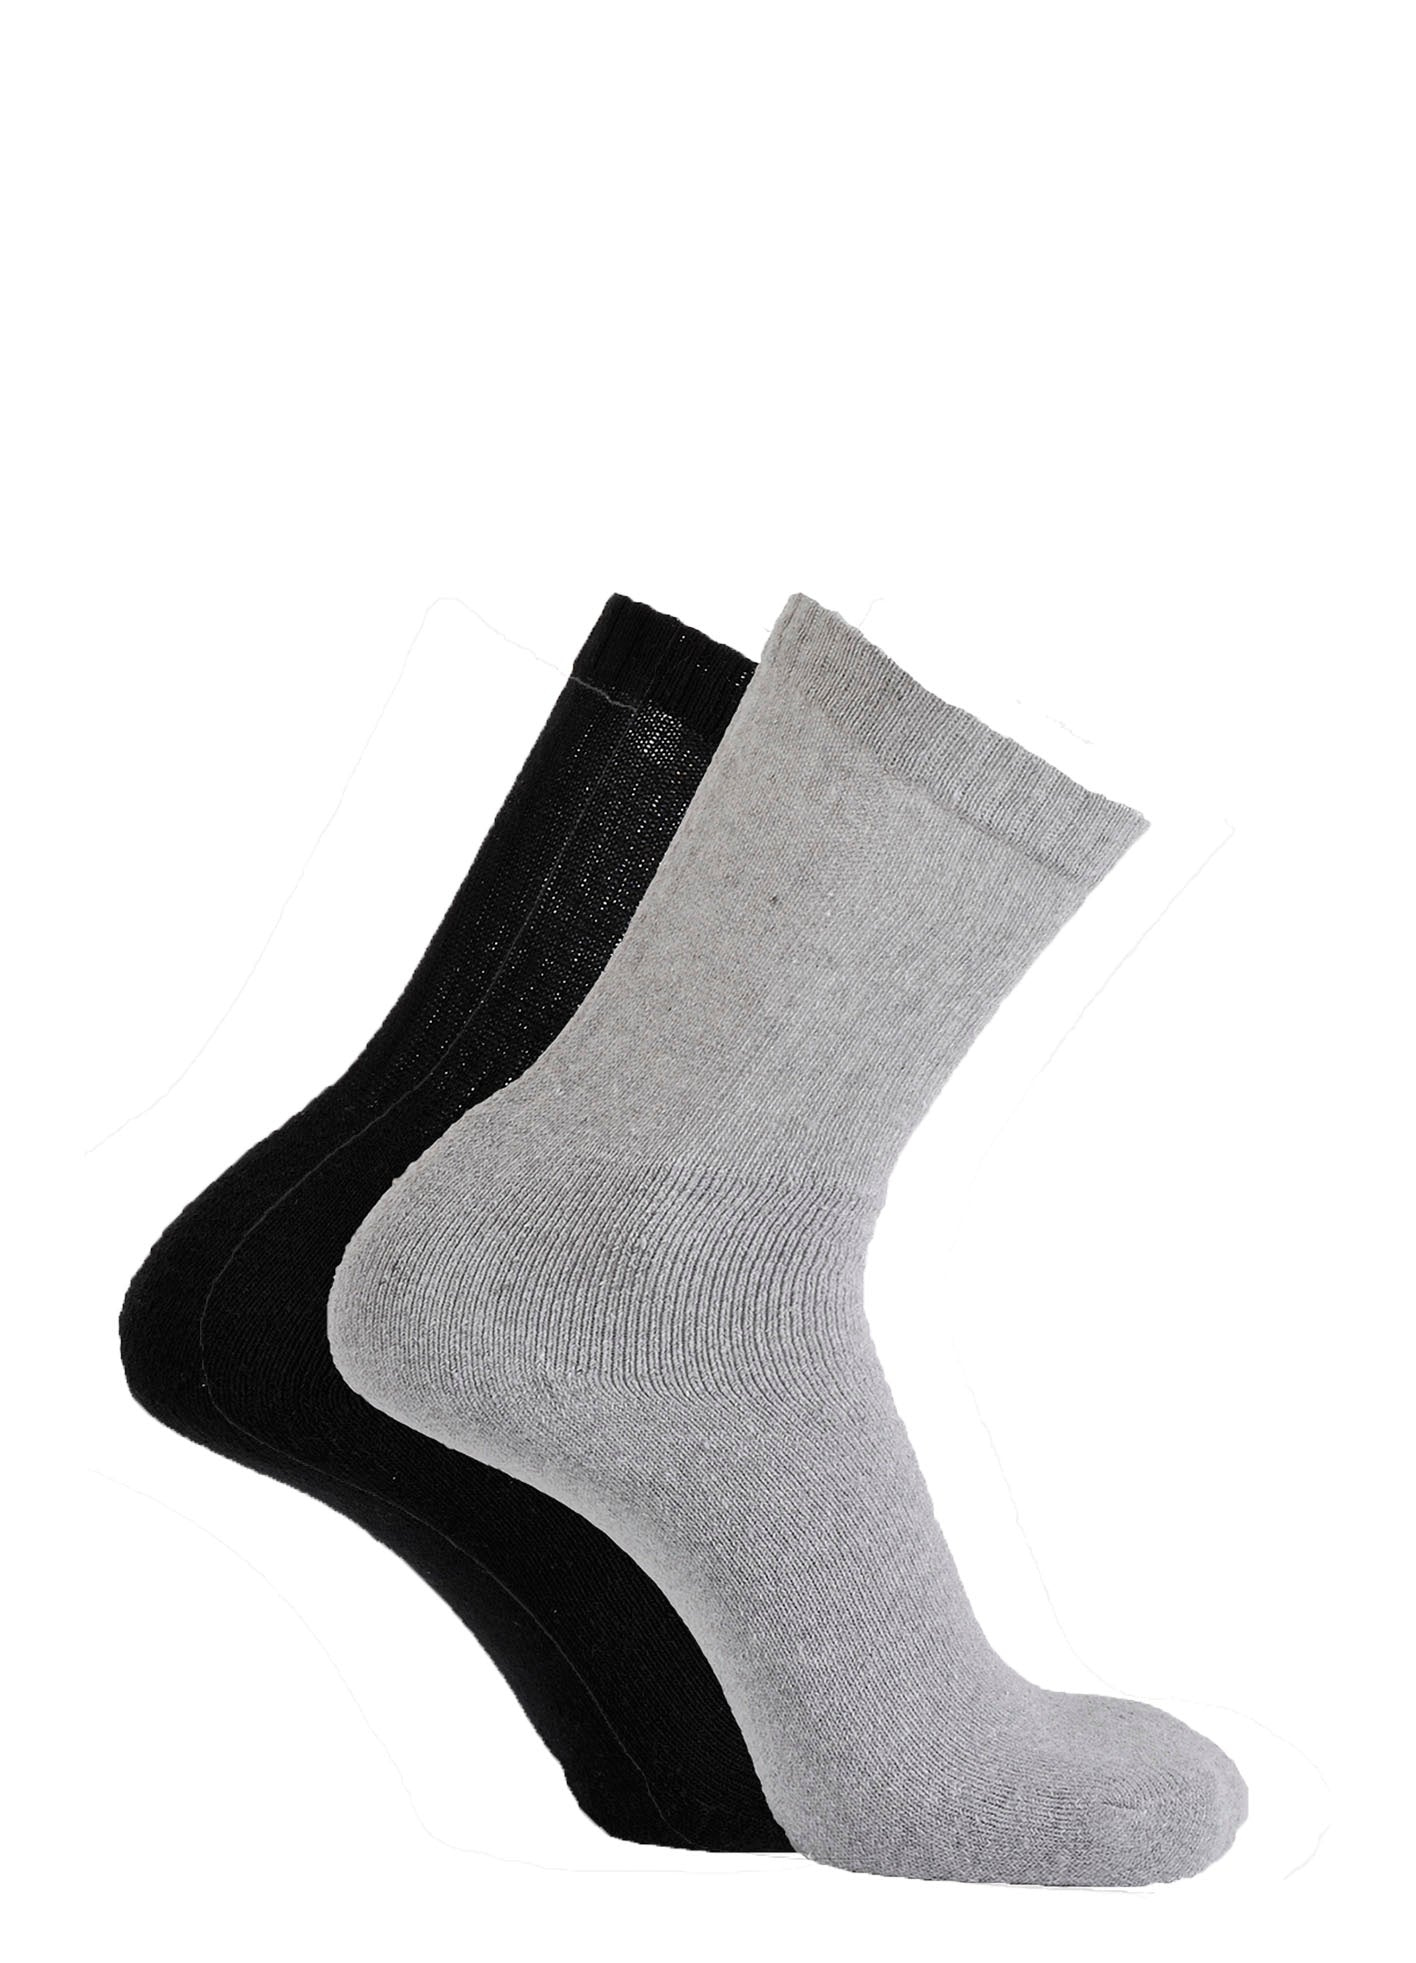 Horizon Multi Sport Crew 5pk Socks